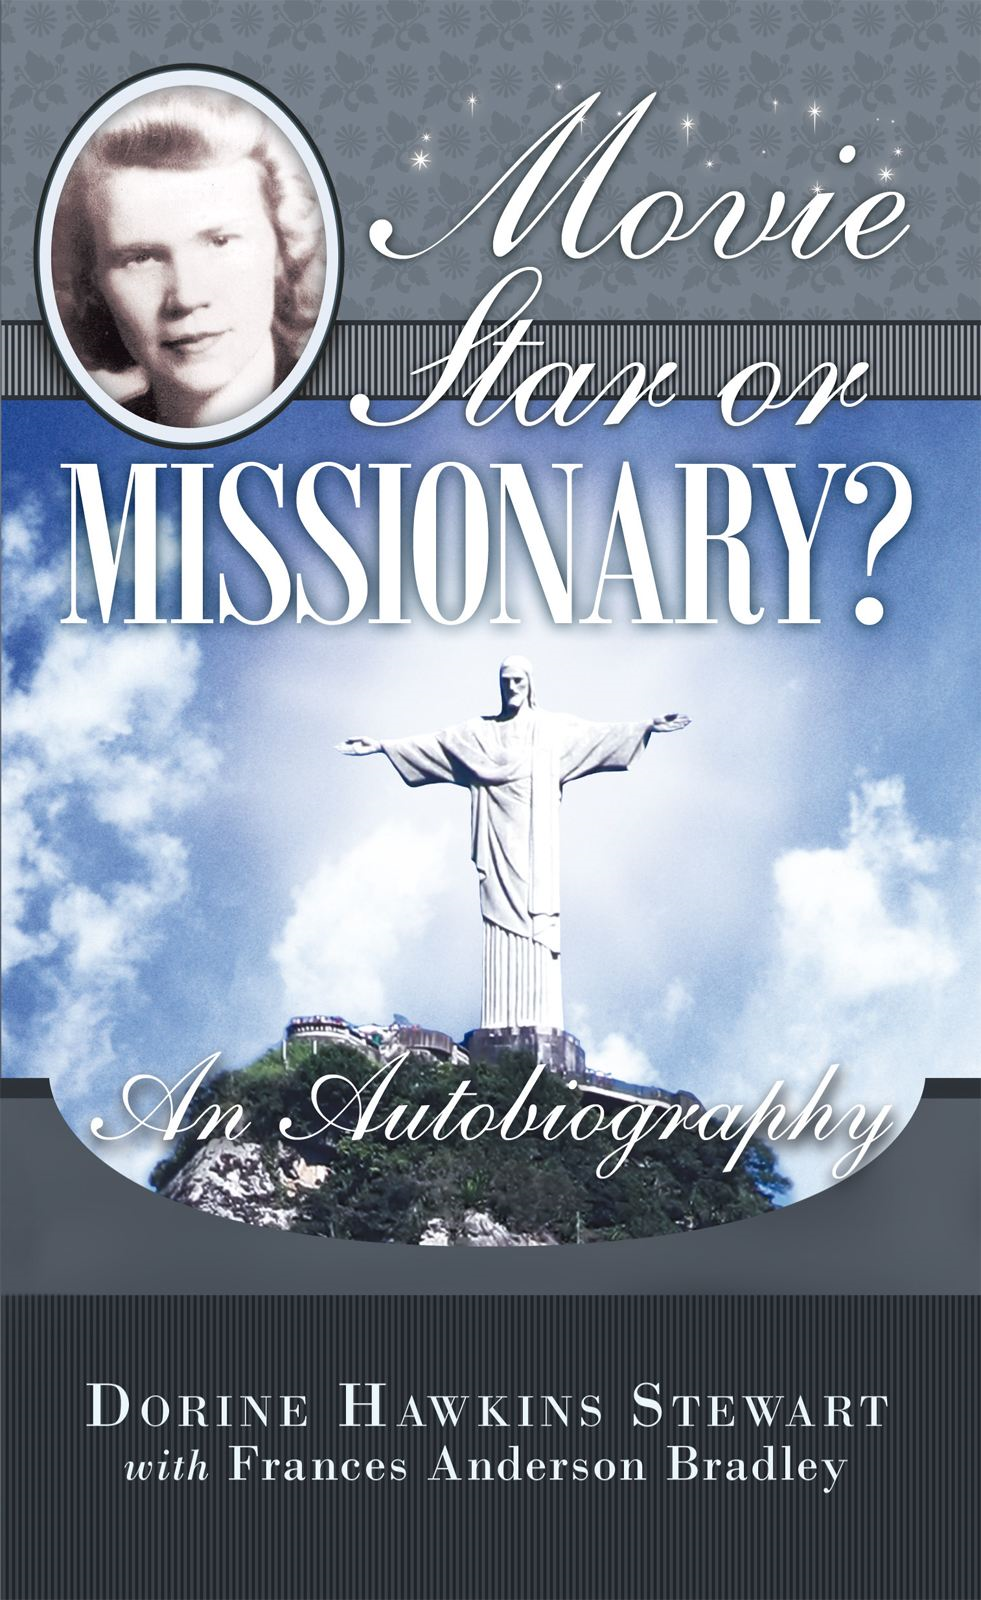 Movie Star or Missionary? By: Dorine Hawkins Stewart with Frances Anderson Bradley